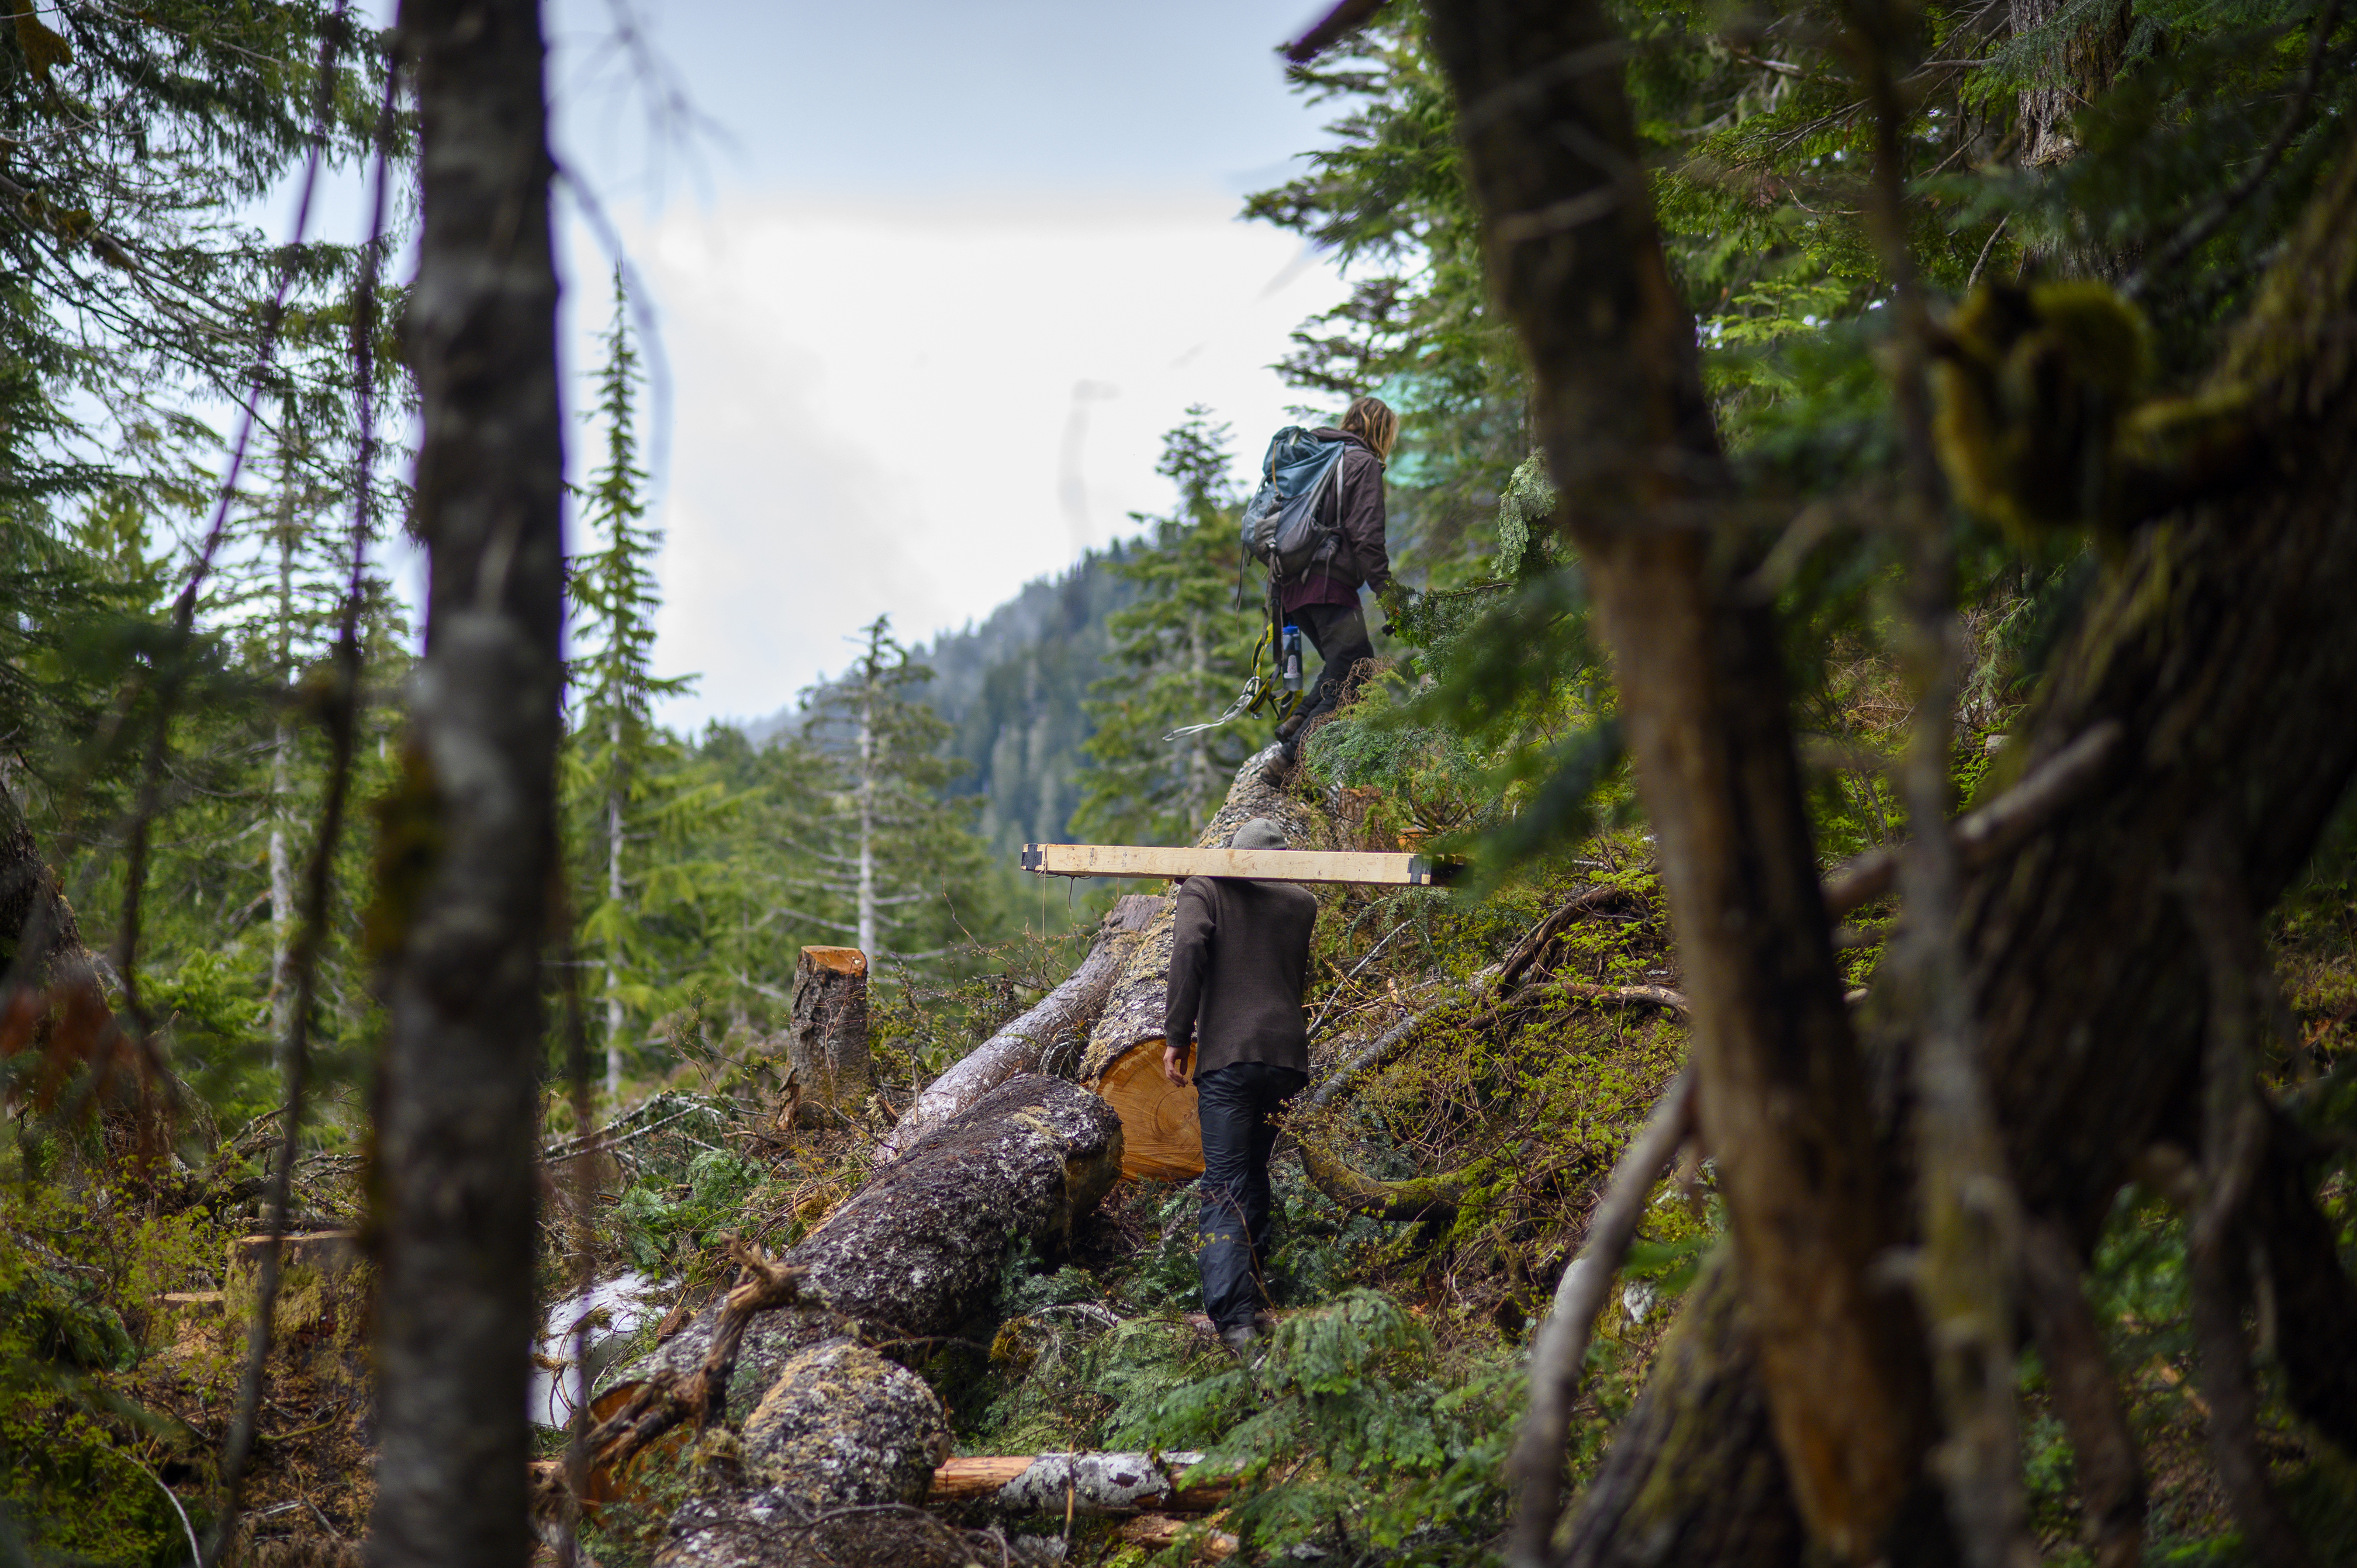 Ridge Camp occupants carry supplies to build a new tree-sit, a platform that enables protestors to position themselves in a tree to prevent it from being cut down. (Kieran Oudshoorn/CBC)